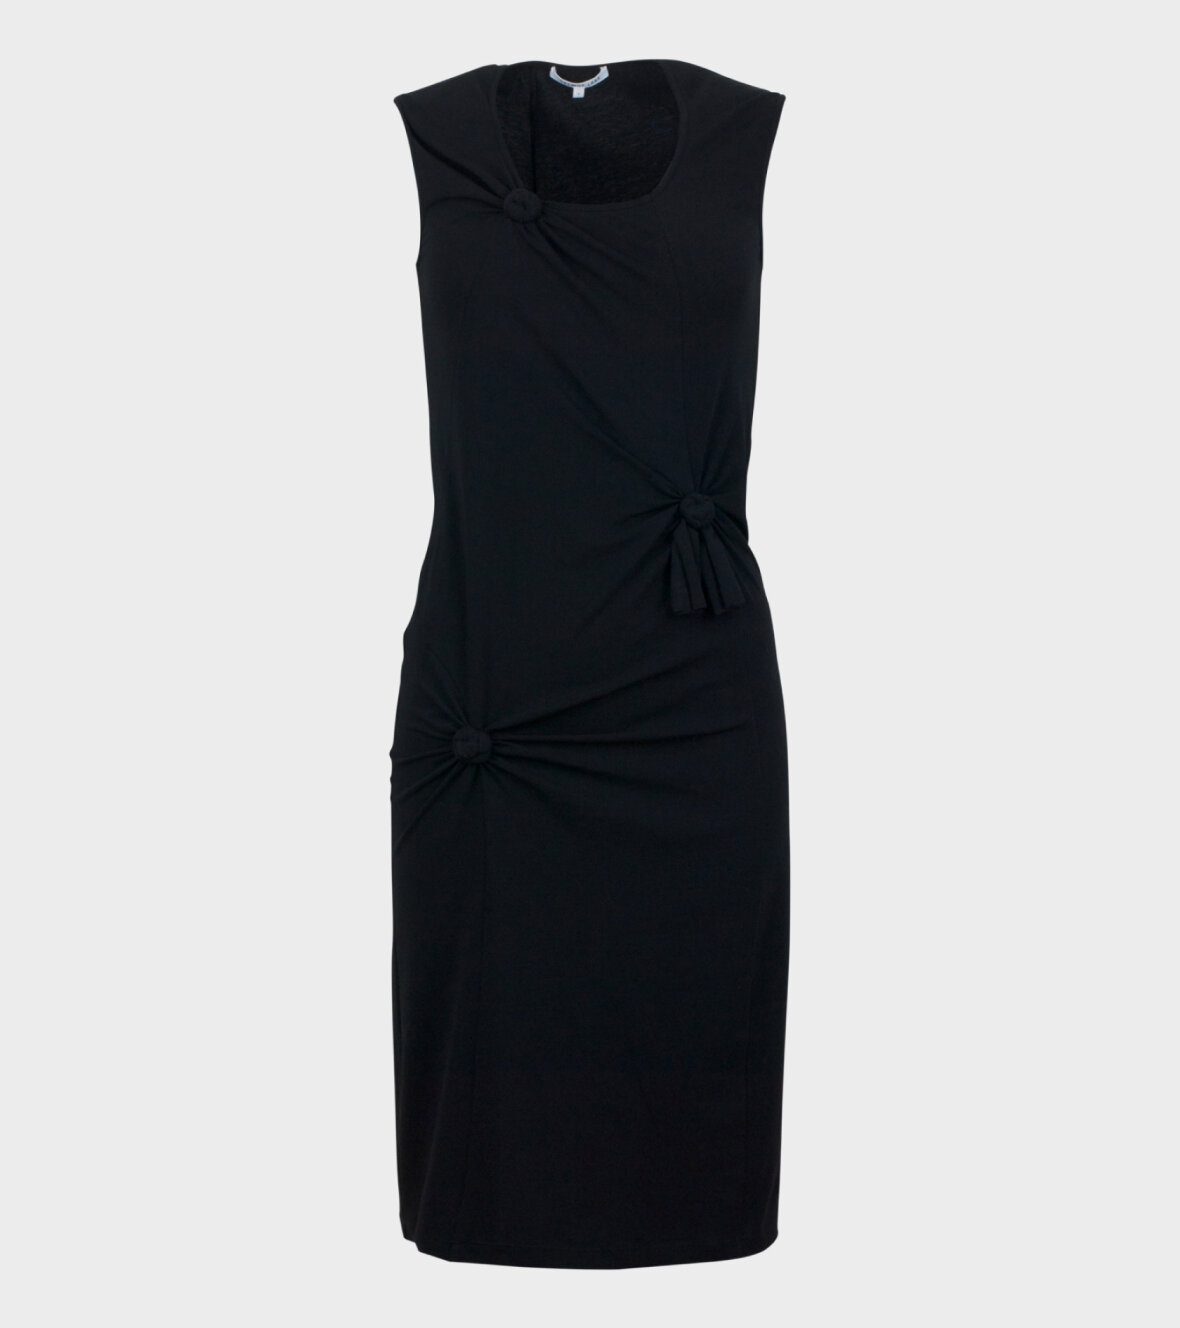 136248fbfb86 Dr. Adams - Helmut Lang Knot Detail Tank Dress - dr. Adams